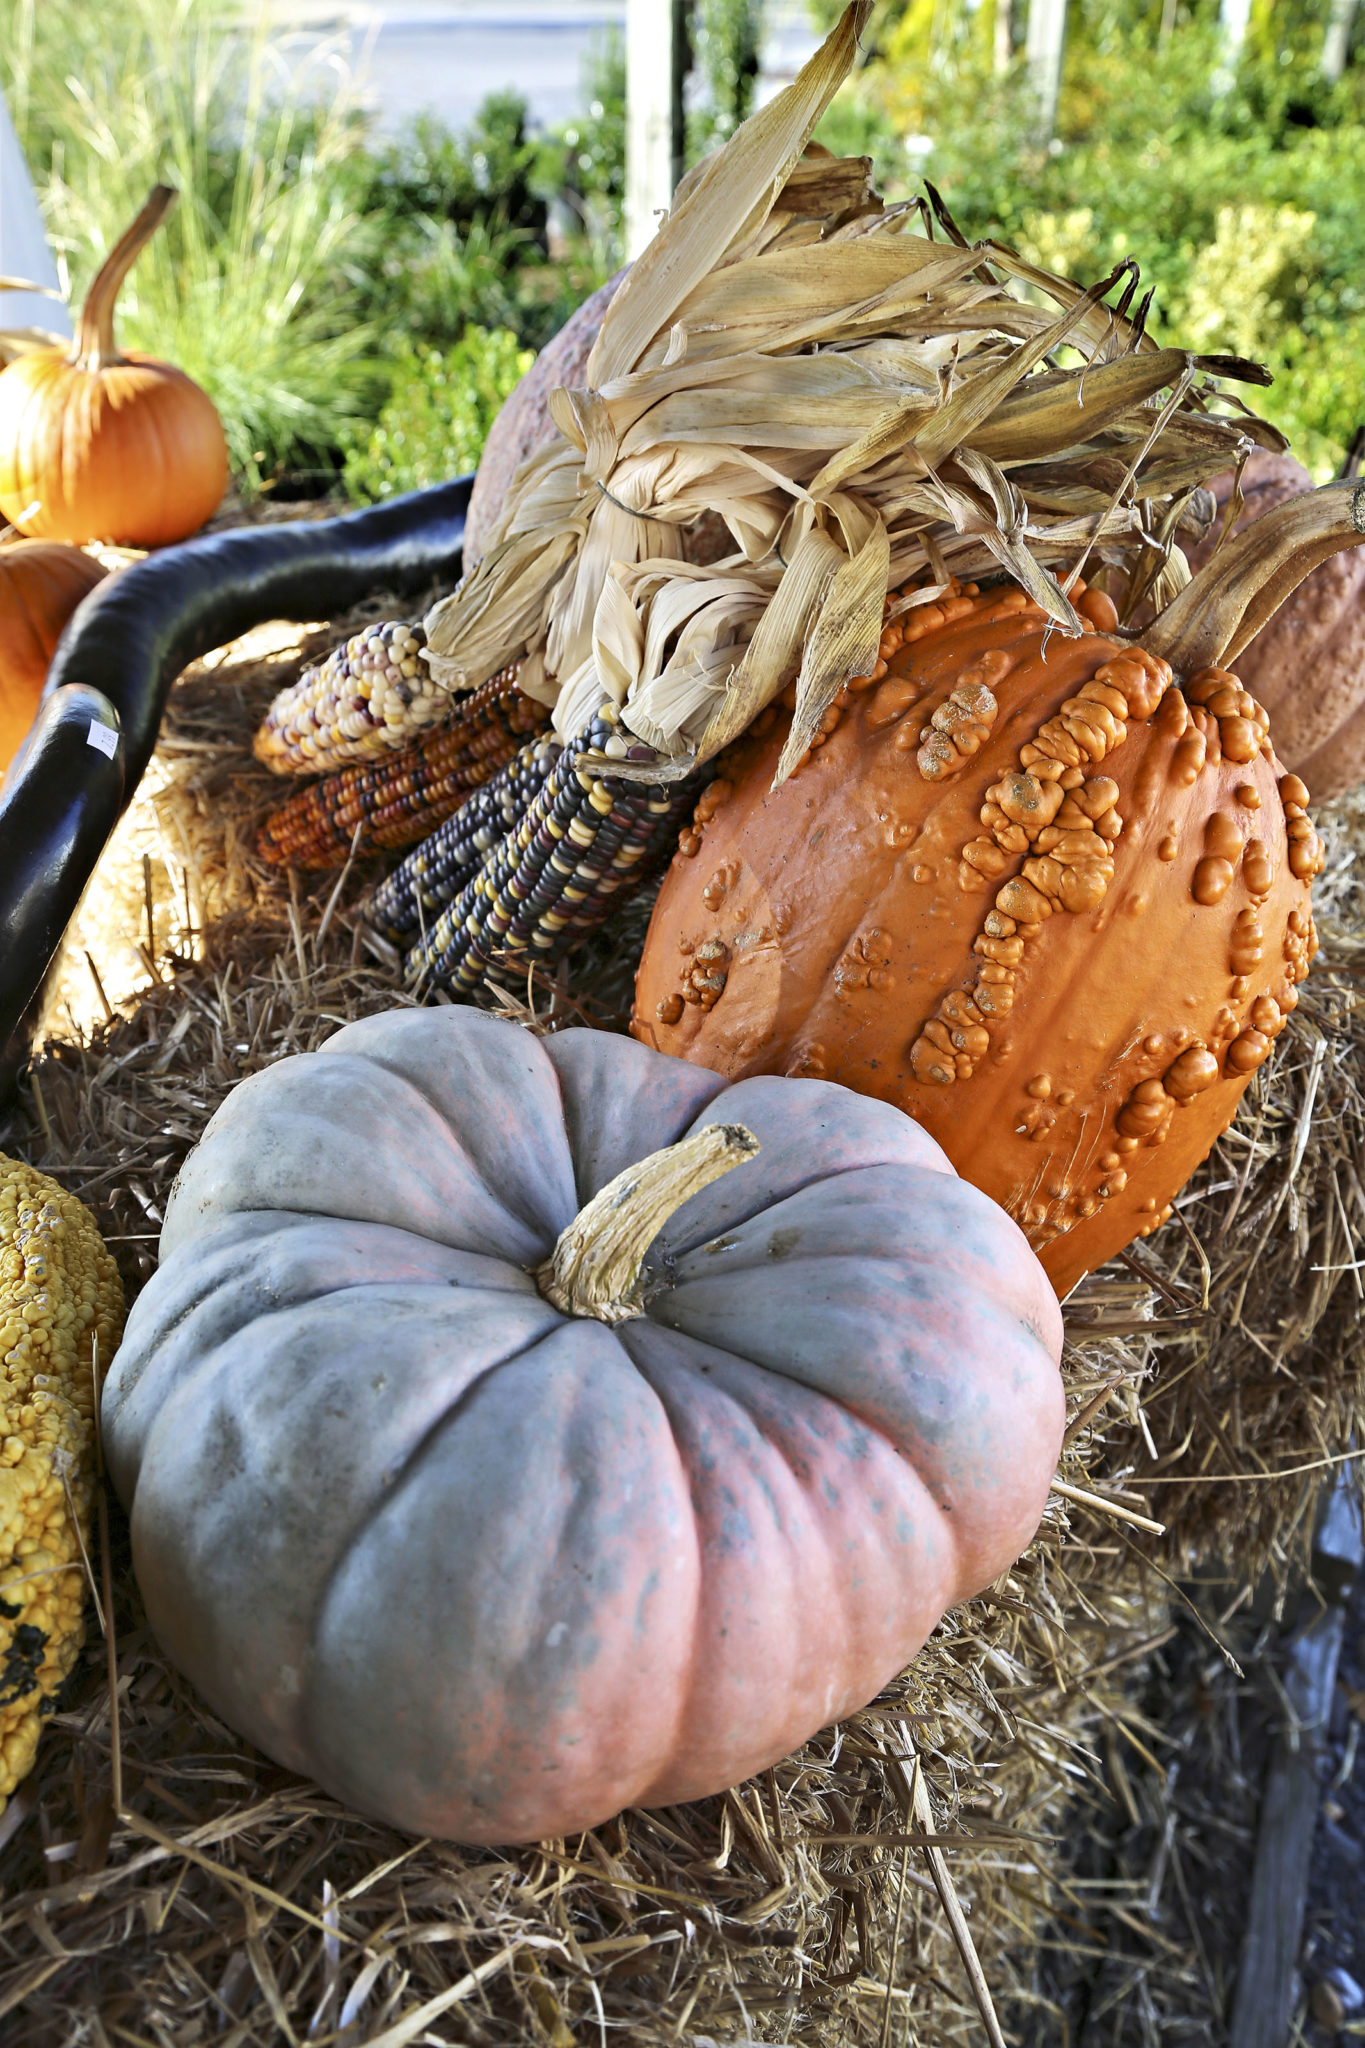 Create A Festive Porch This Fall With Pumpkins And Gourds